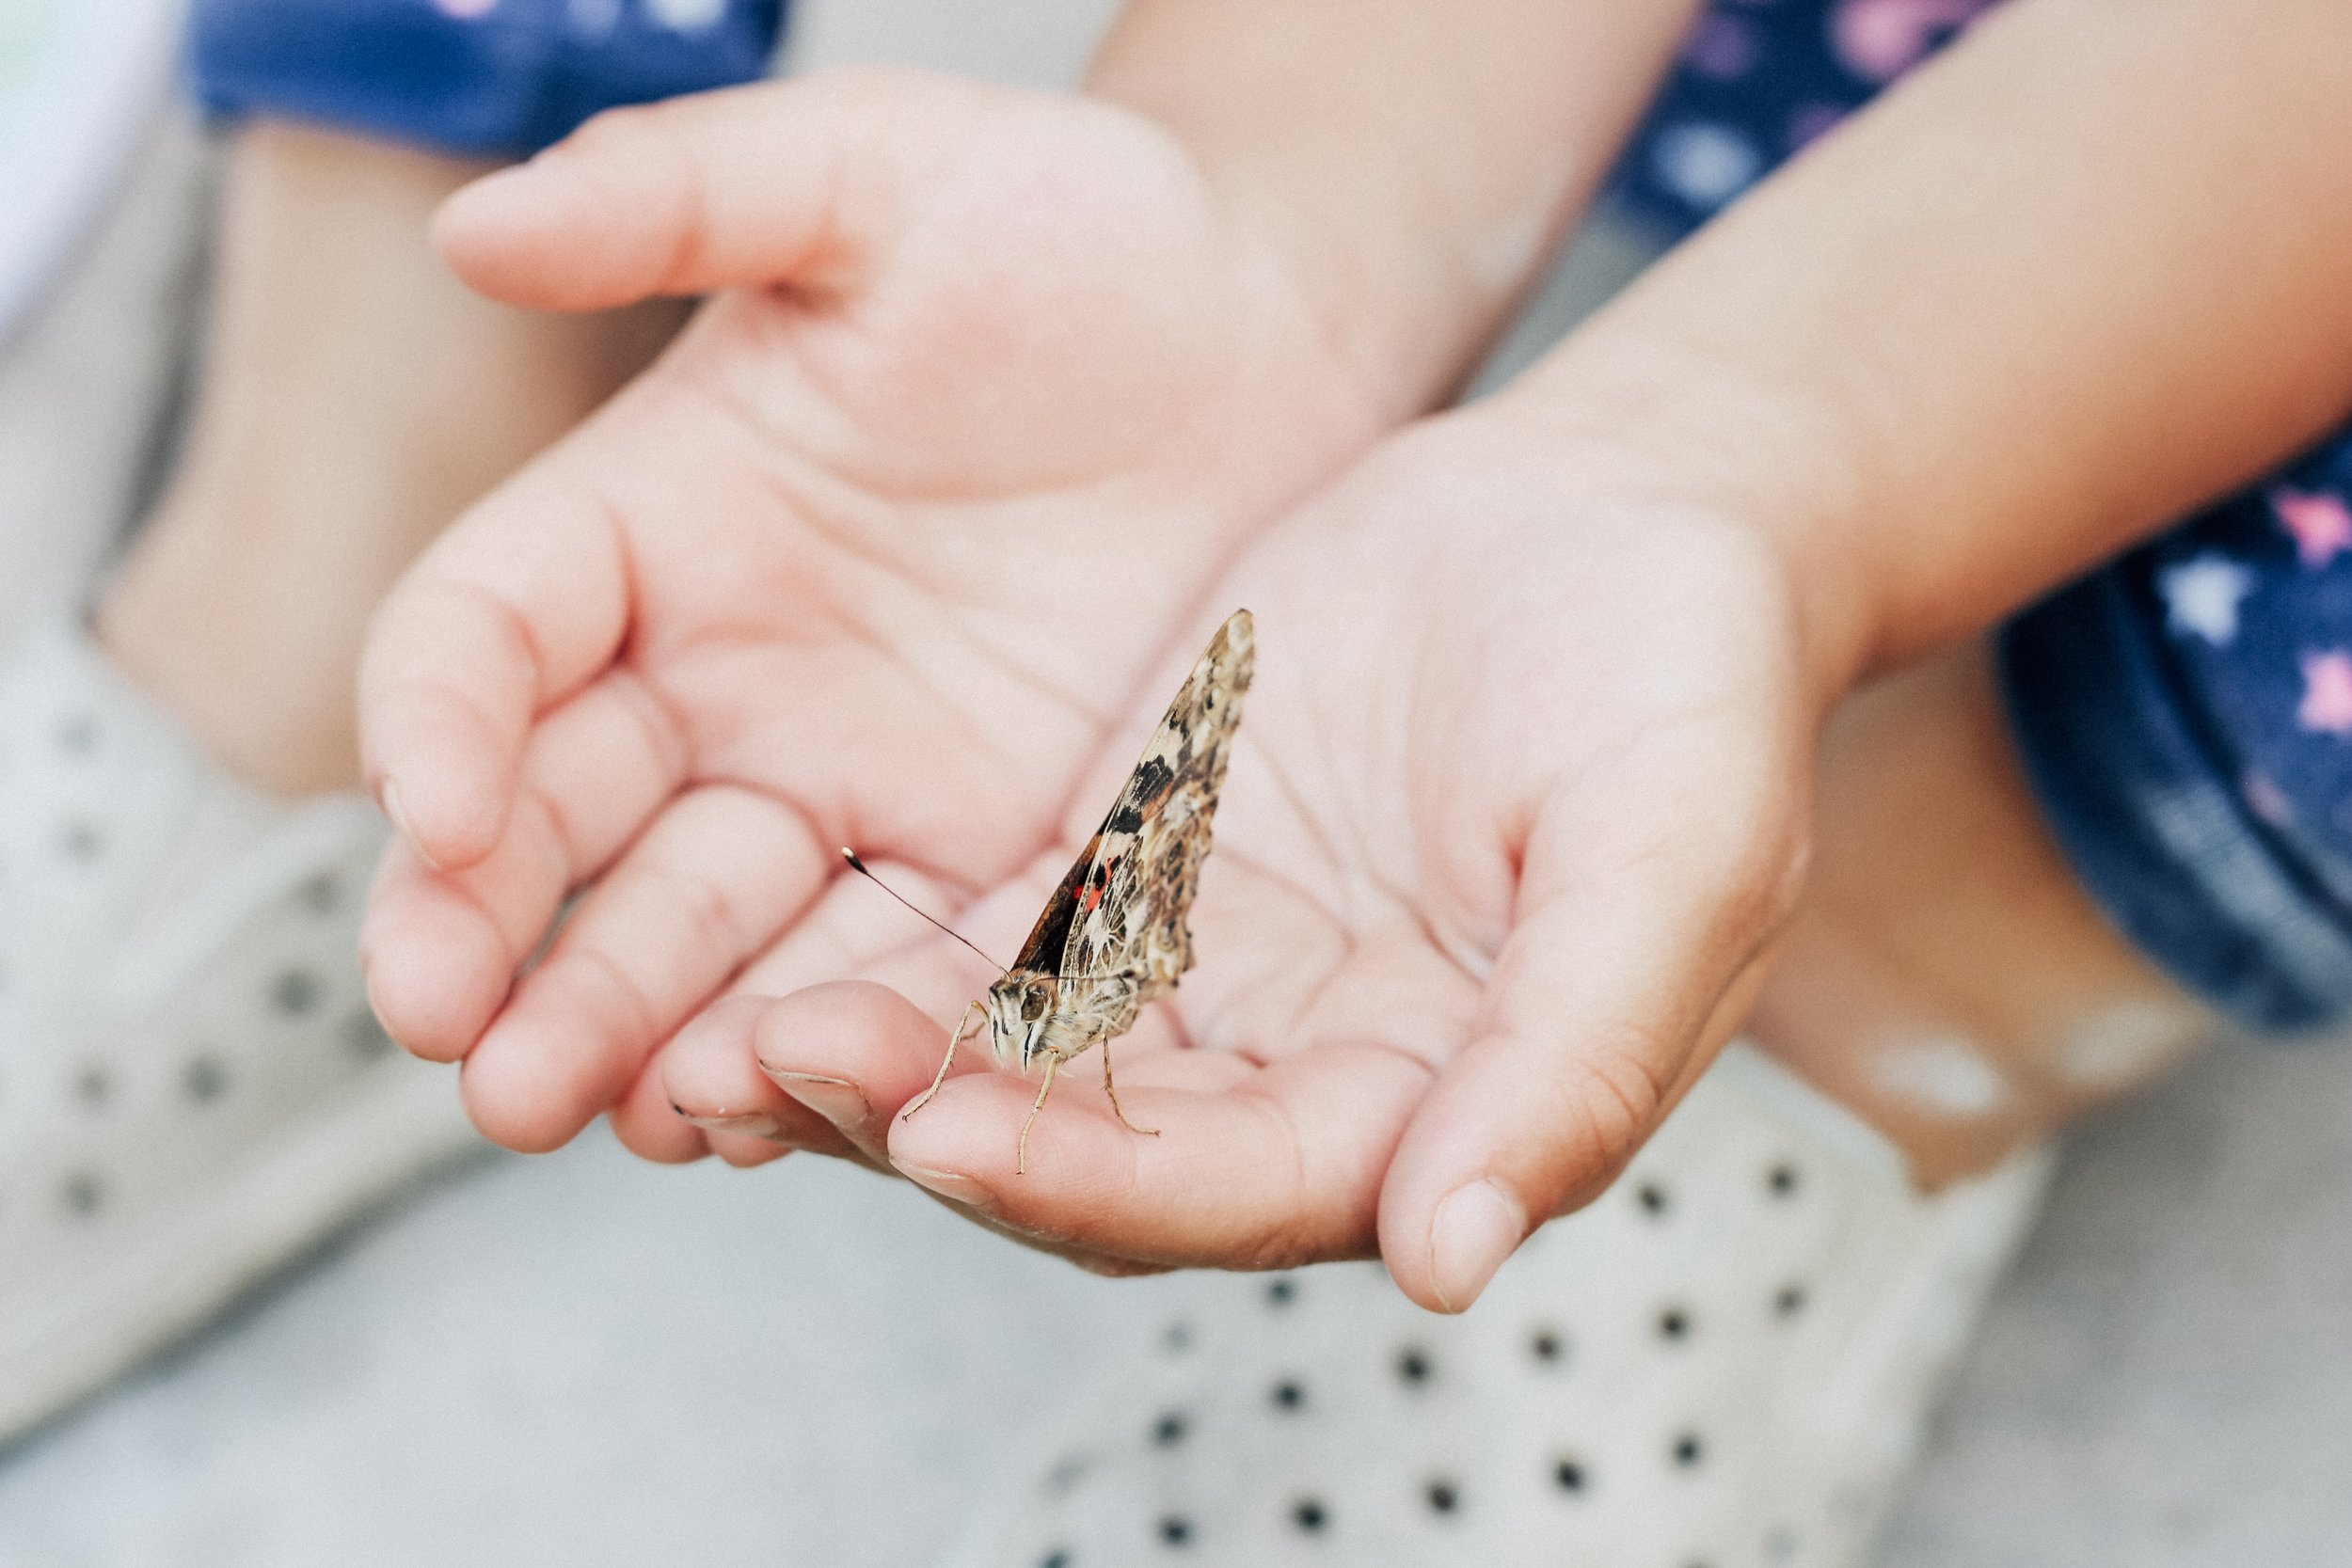 Children will have the opportunity to have their own caterpillars and observe their life cycles as they transition into a butterfly in their own home! Read more about what we incorporated in our last bug unit by clicking  here !